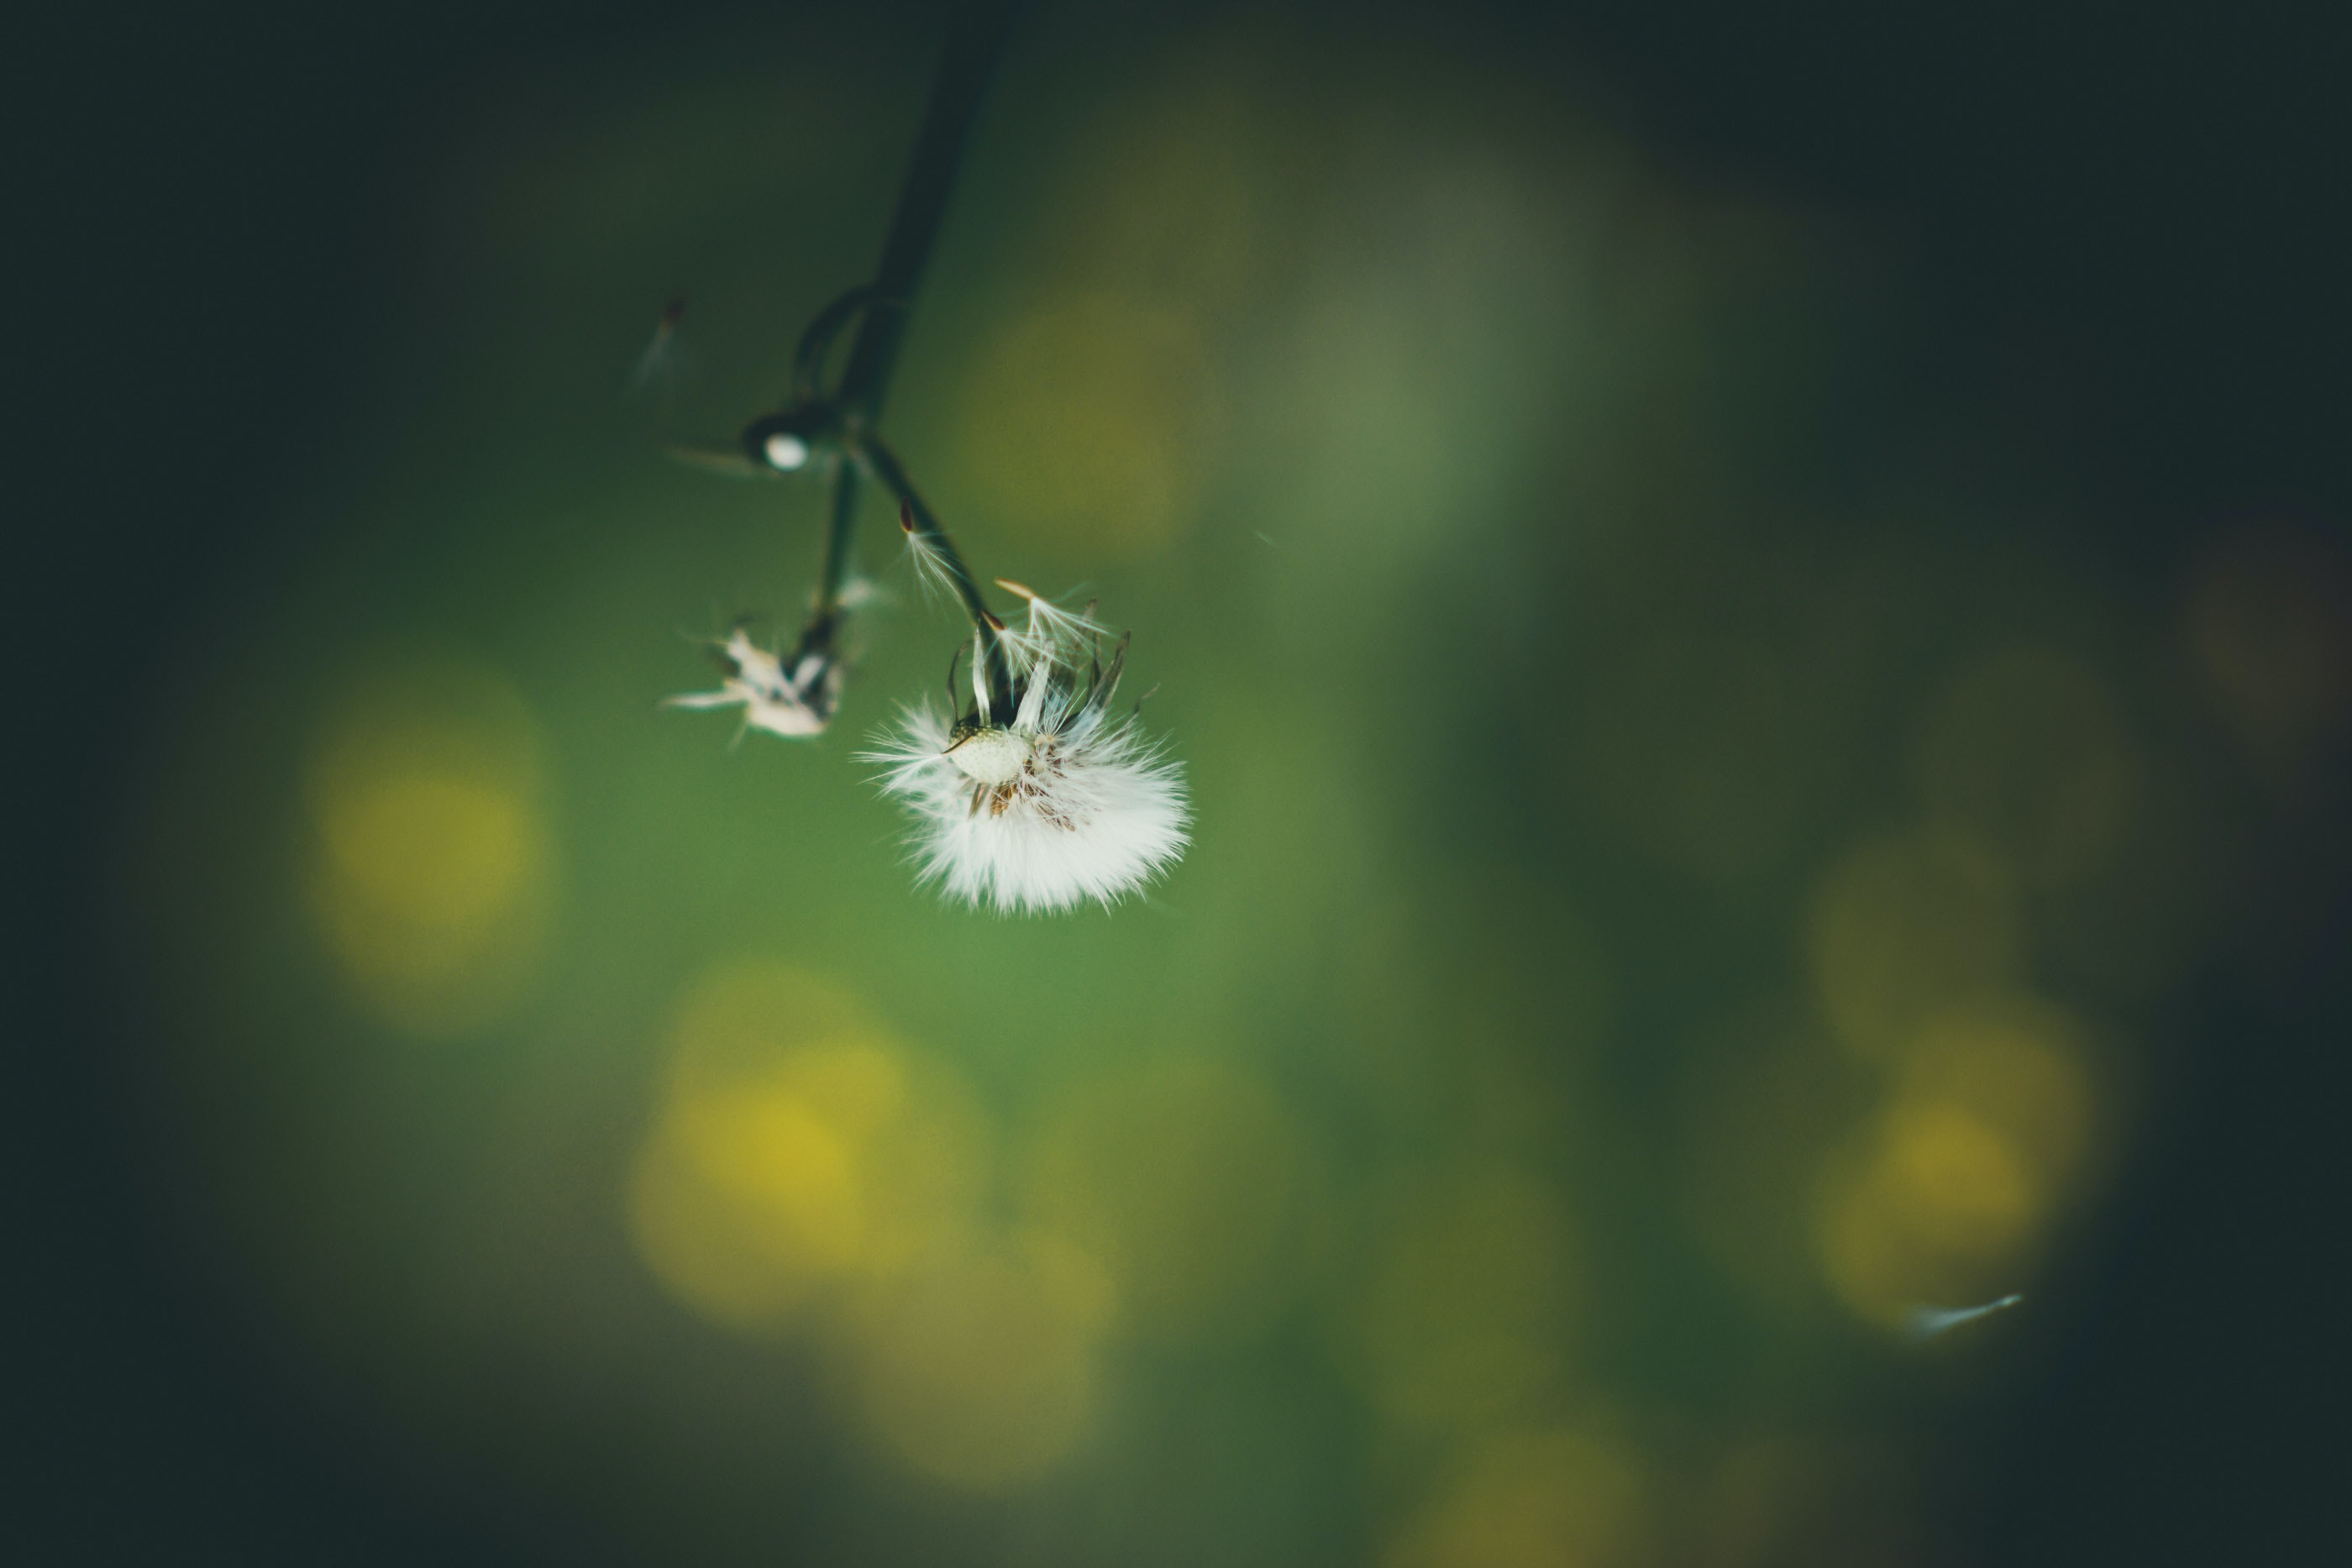 white flower seed head in bokeh photography